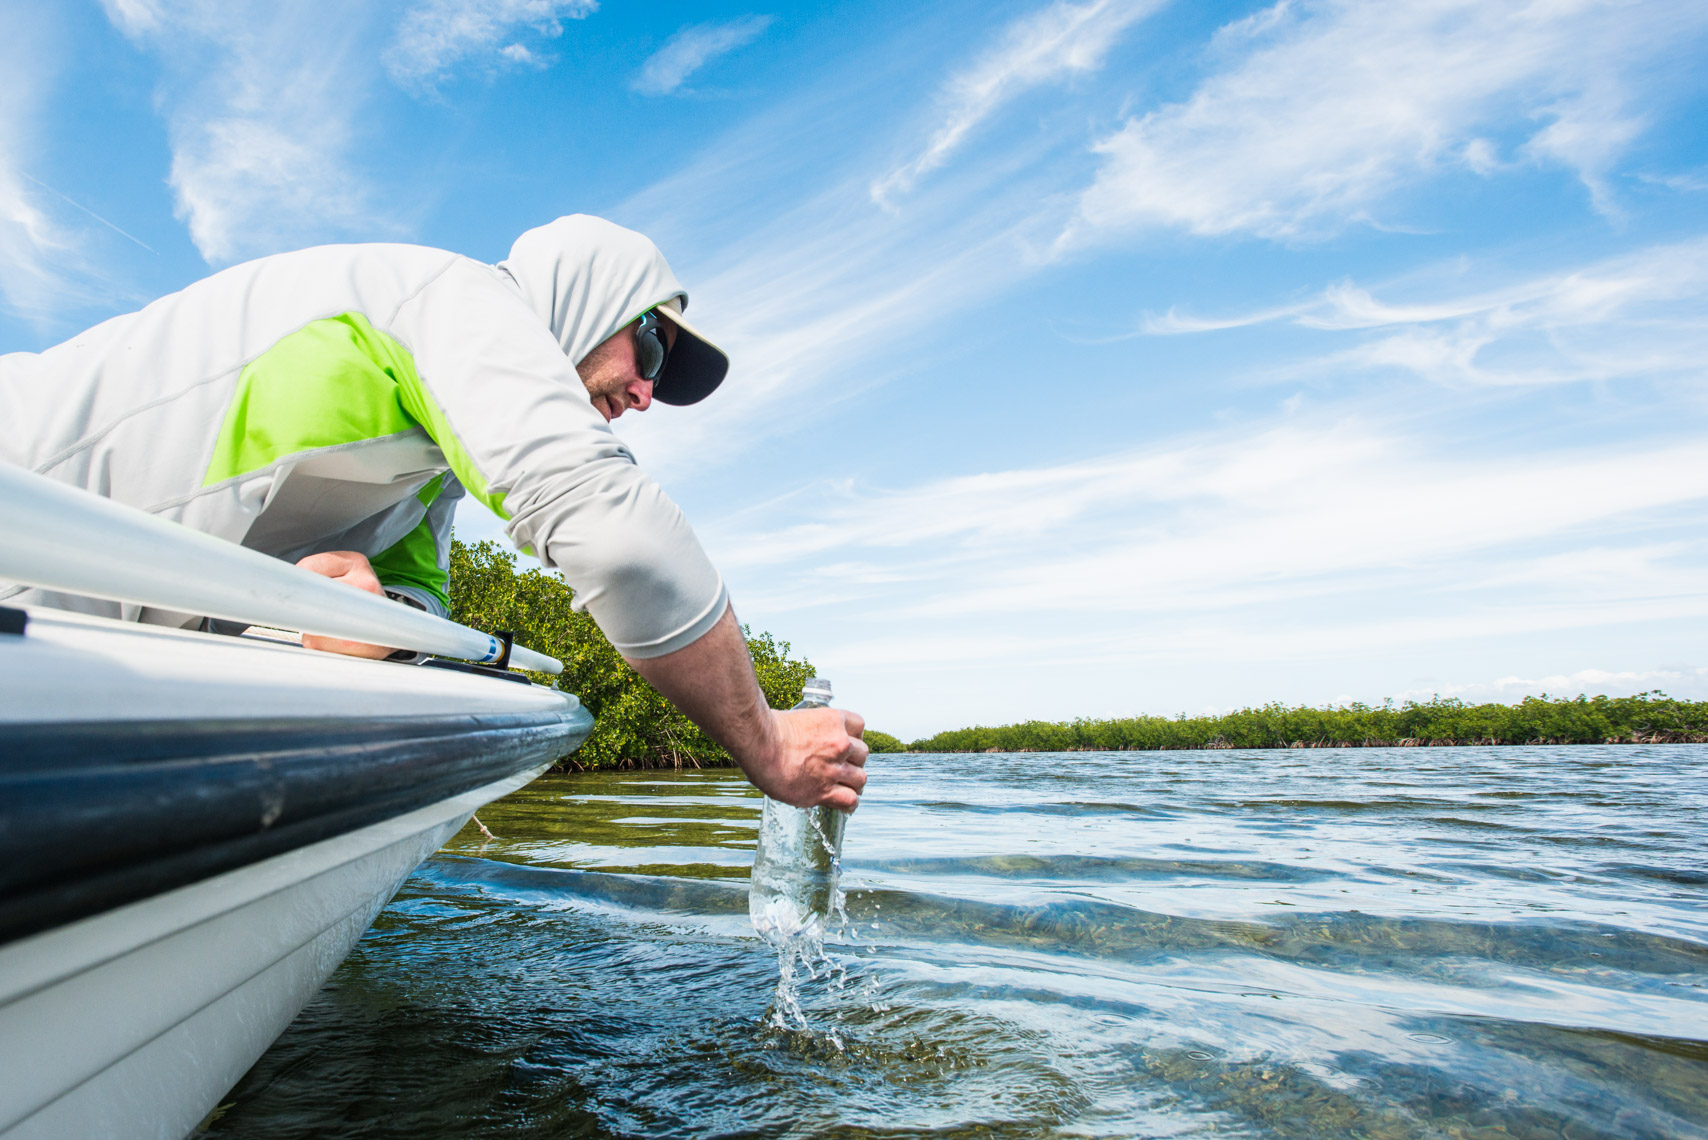 Sampling for micro-plastics in the Florida Keys